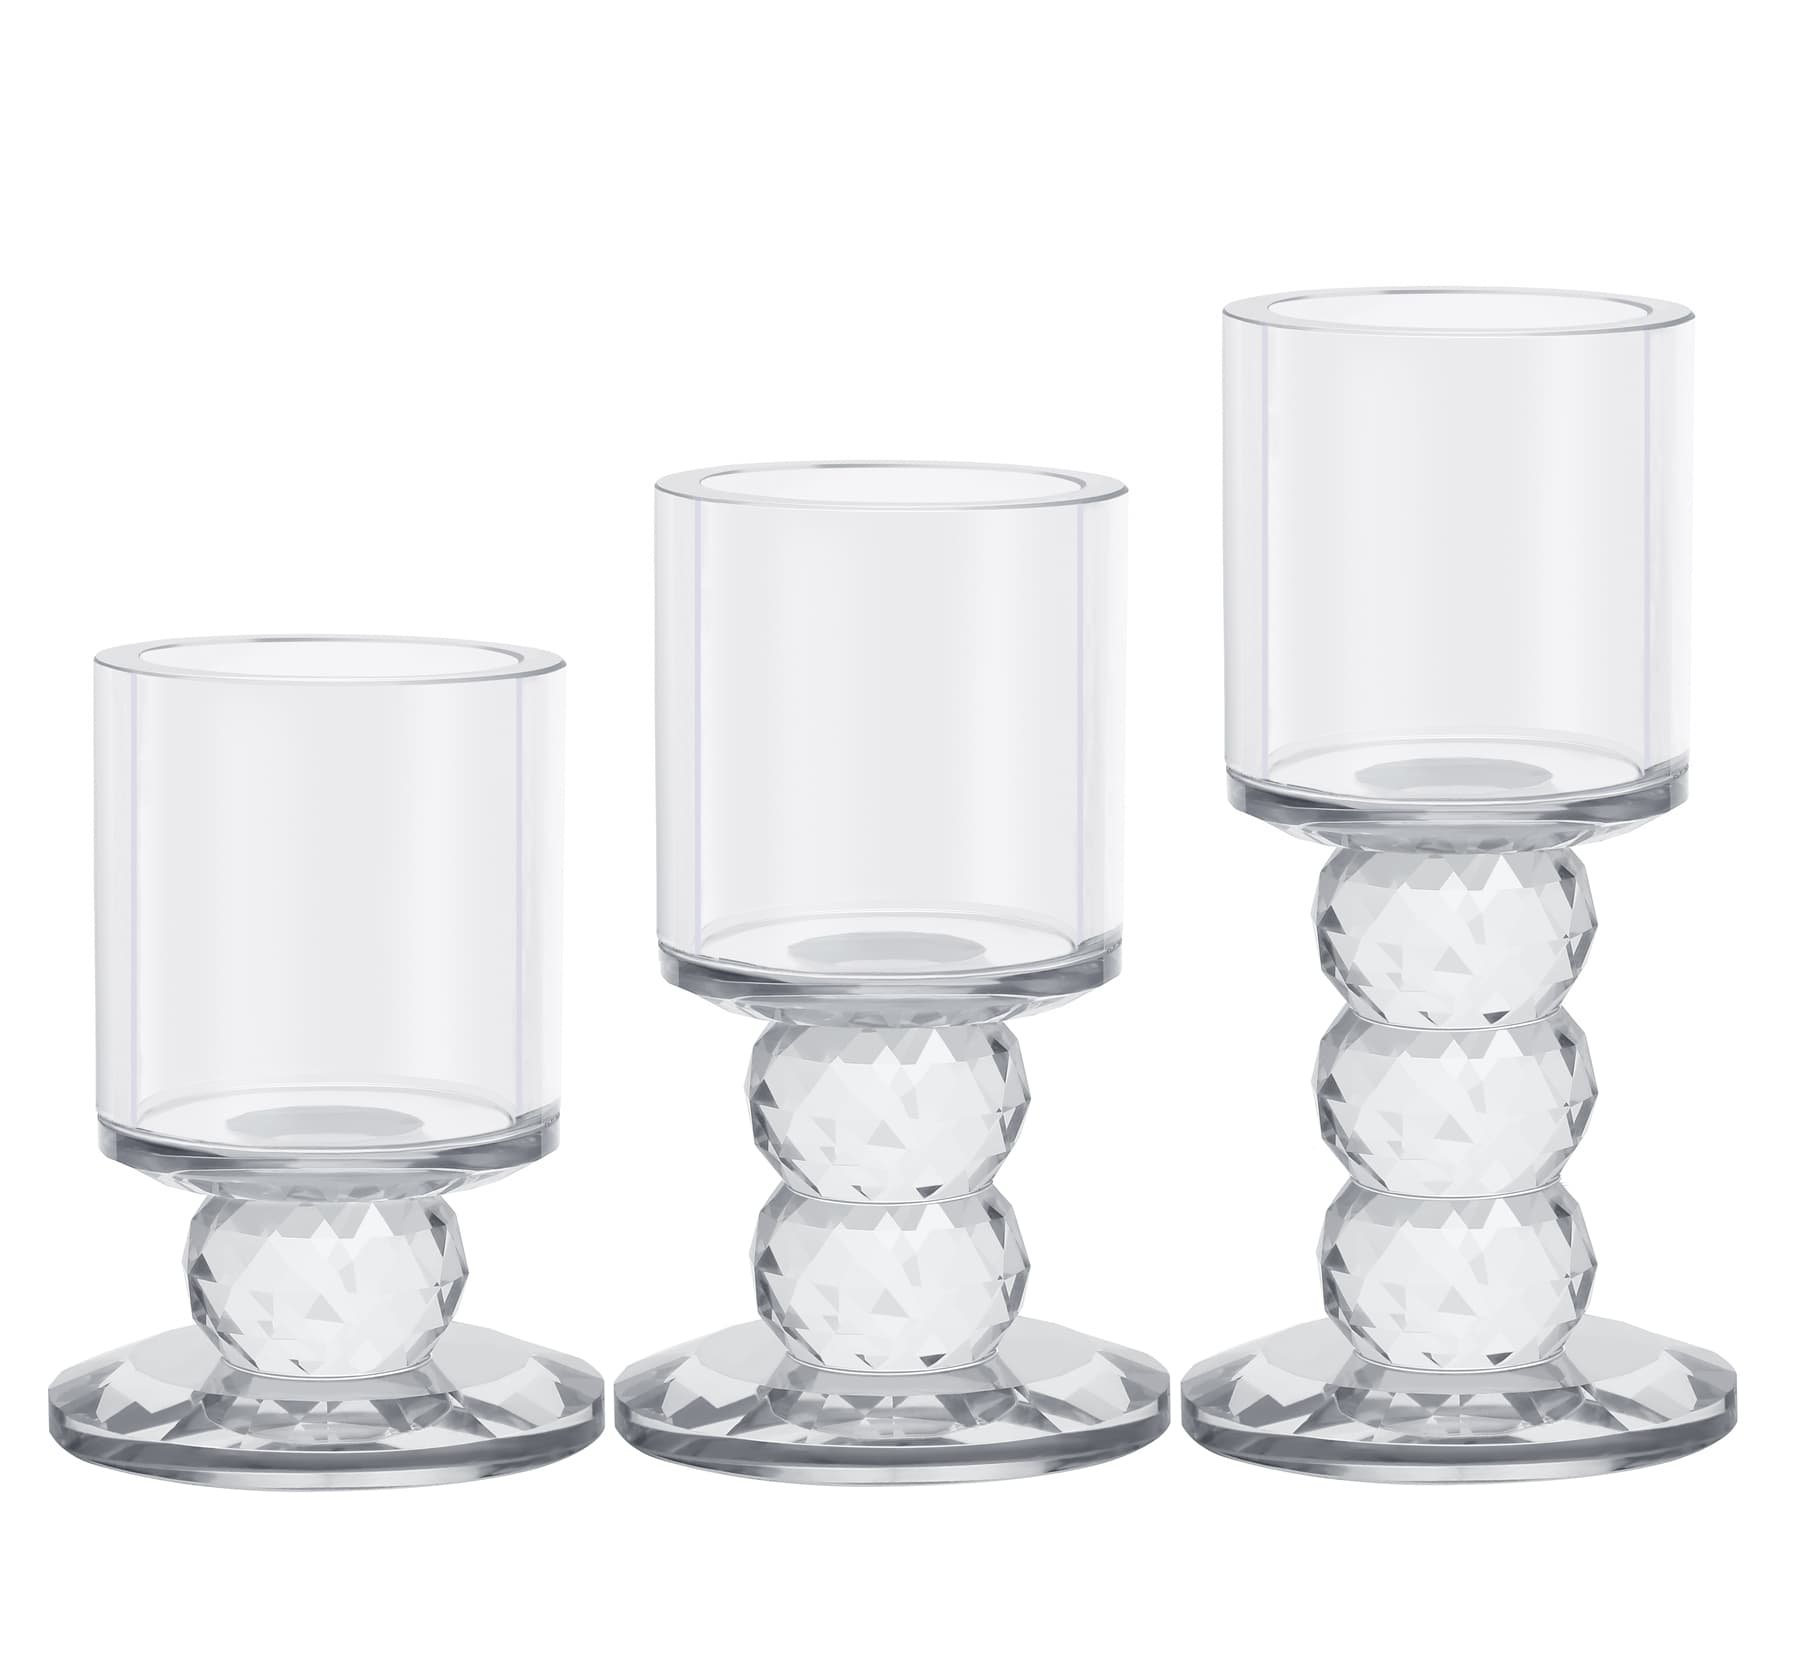 Crystal Candle Holder Set of 3 Crystal Candlestick 3.3''/4.2''/5'' Height Tealight Pillar Candle Holder Set Centerpieces for Wedding Parties Home Decor Ceremony and Anniversary